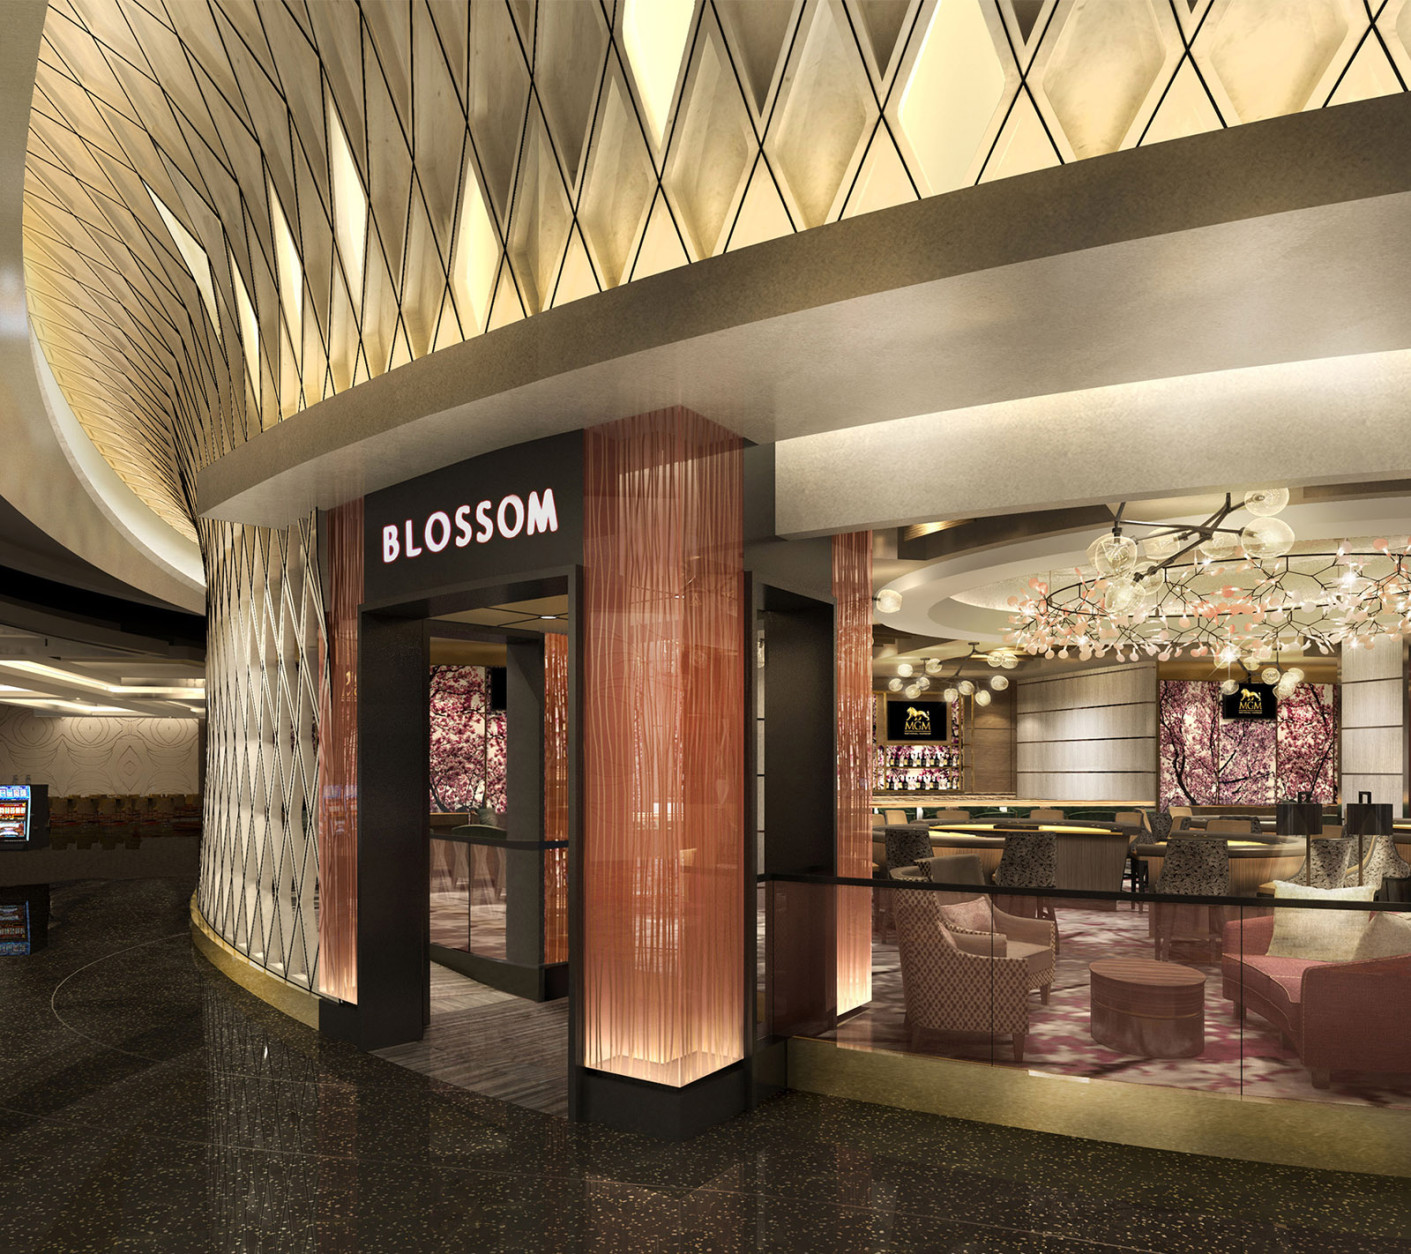 This artists rendering shows the Blossom Cocktail Lounge was inspired by the District's famous chery blossoms. A second venue, called Felt Bar & Lounge also will offer cocktails. (Courtesy MGM National Harbor)